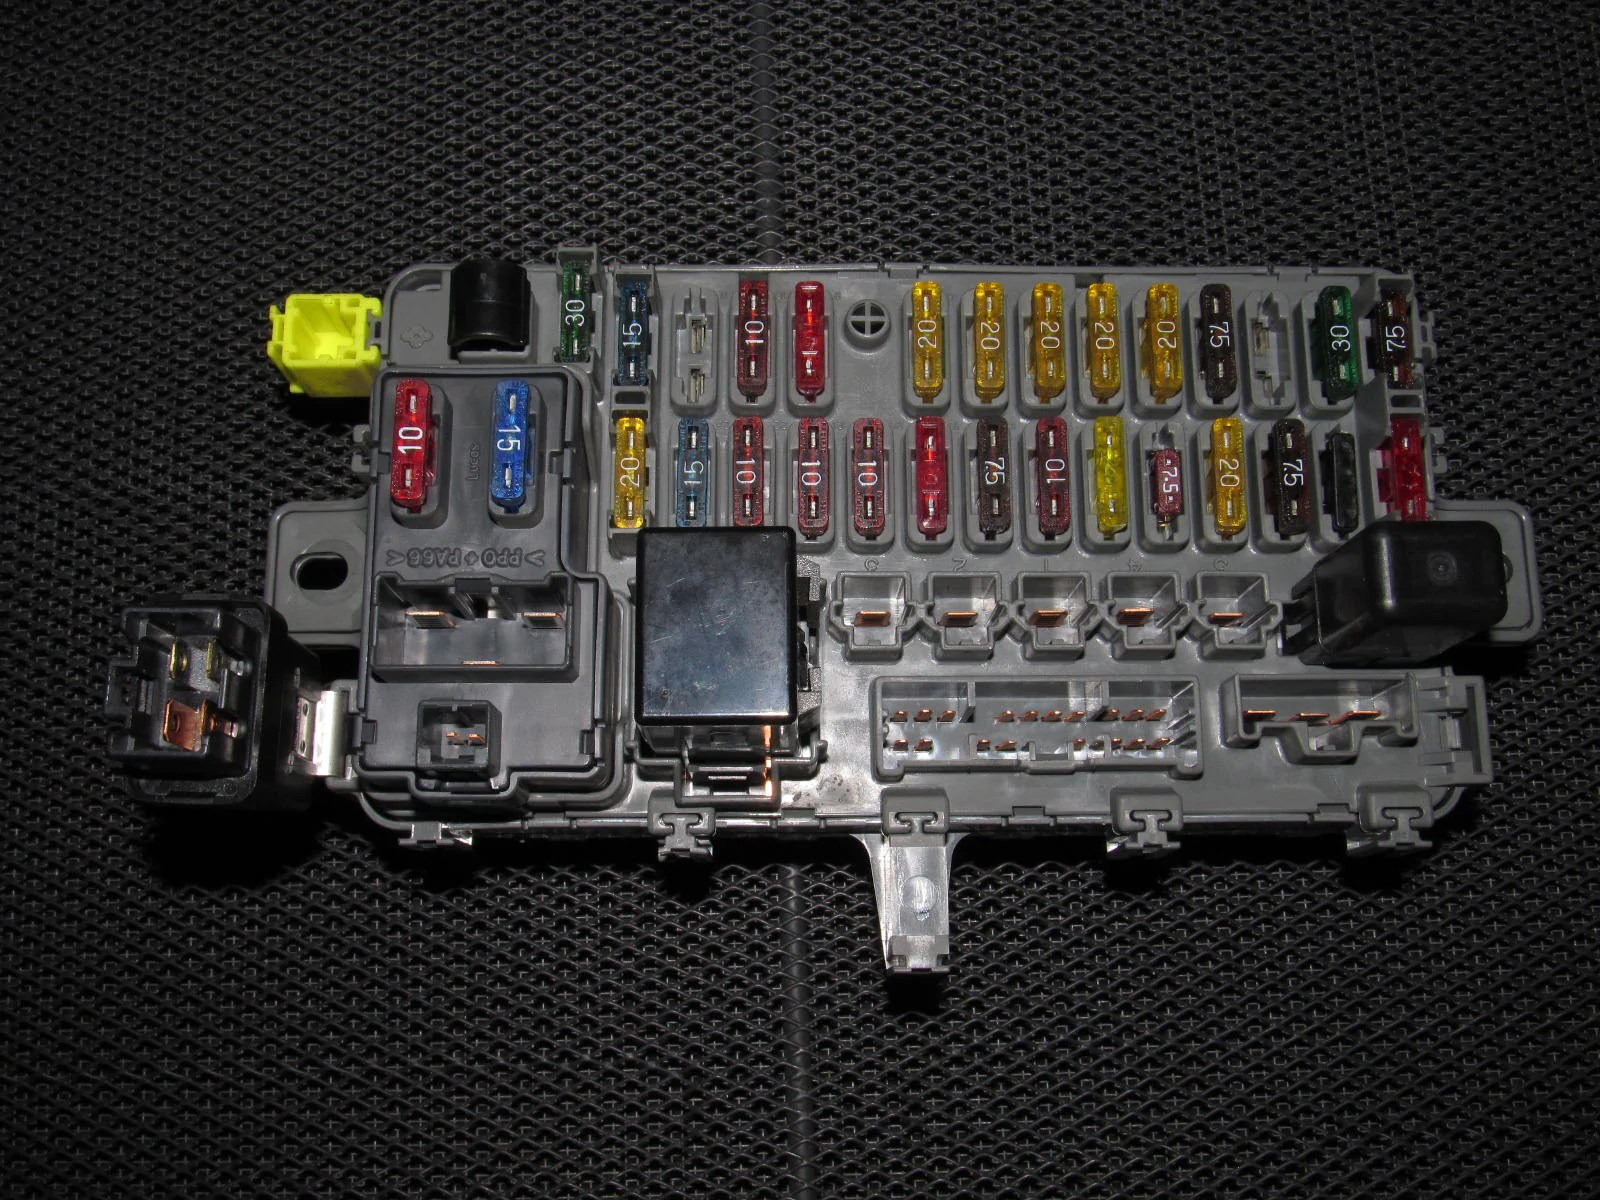 medium resolution of 94 95 96 97 98 99 00 01 acura integra oem interior fuse box